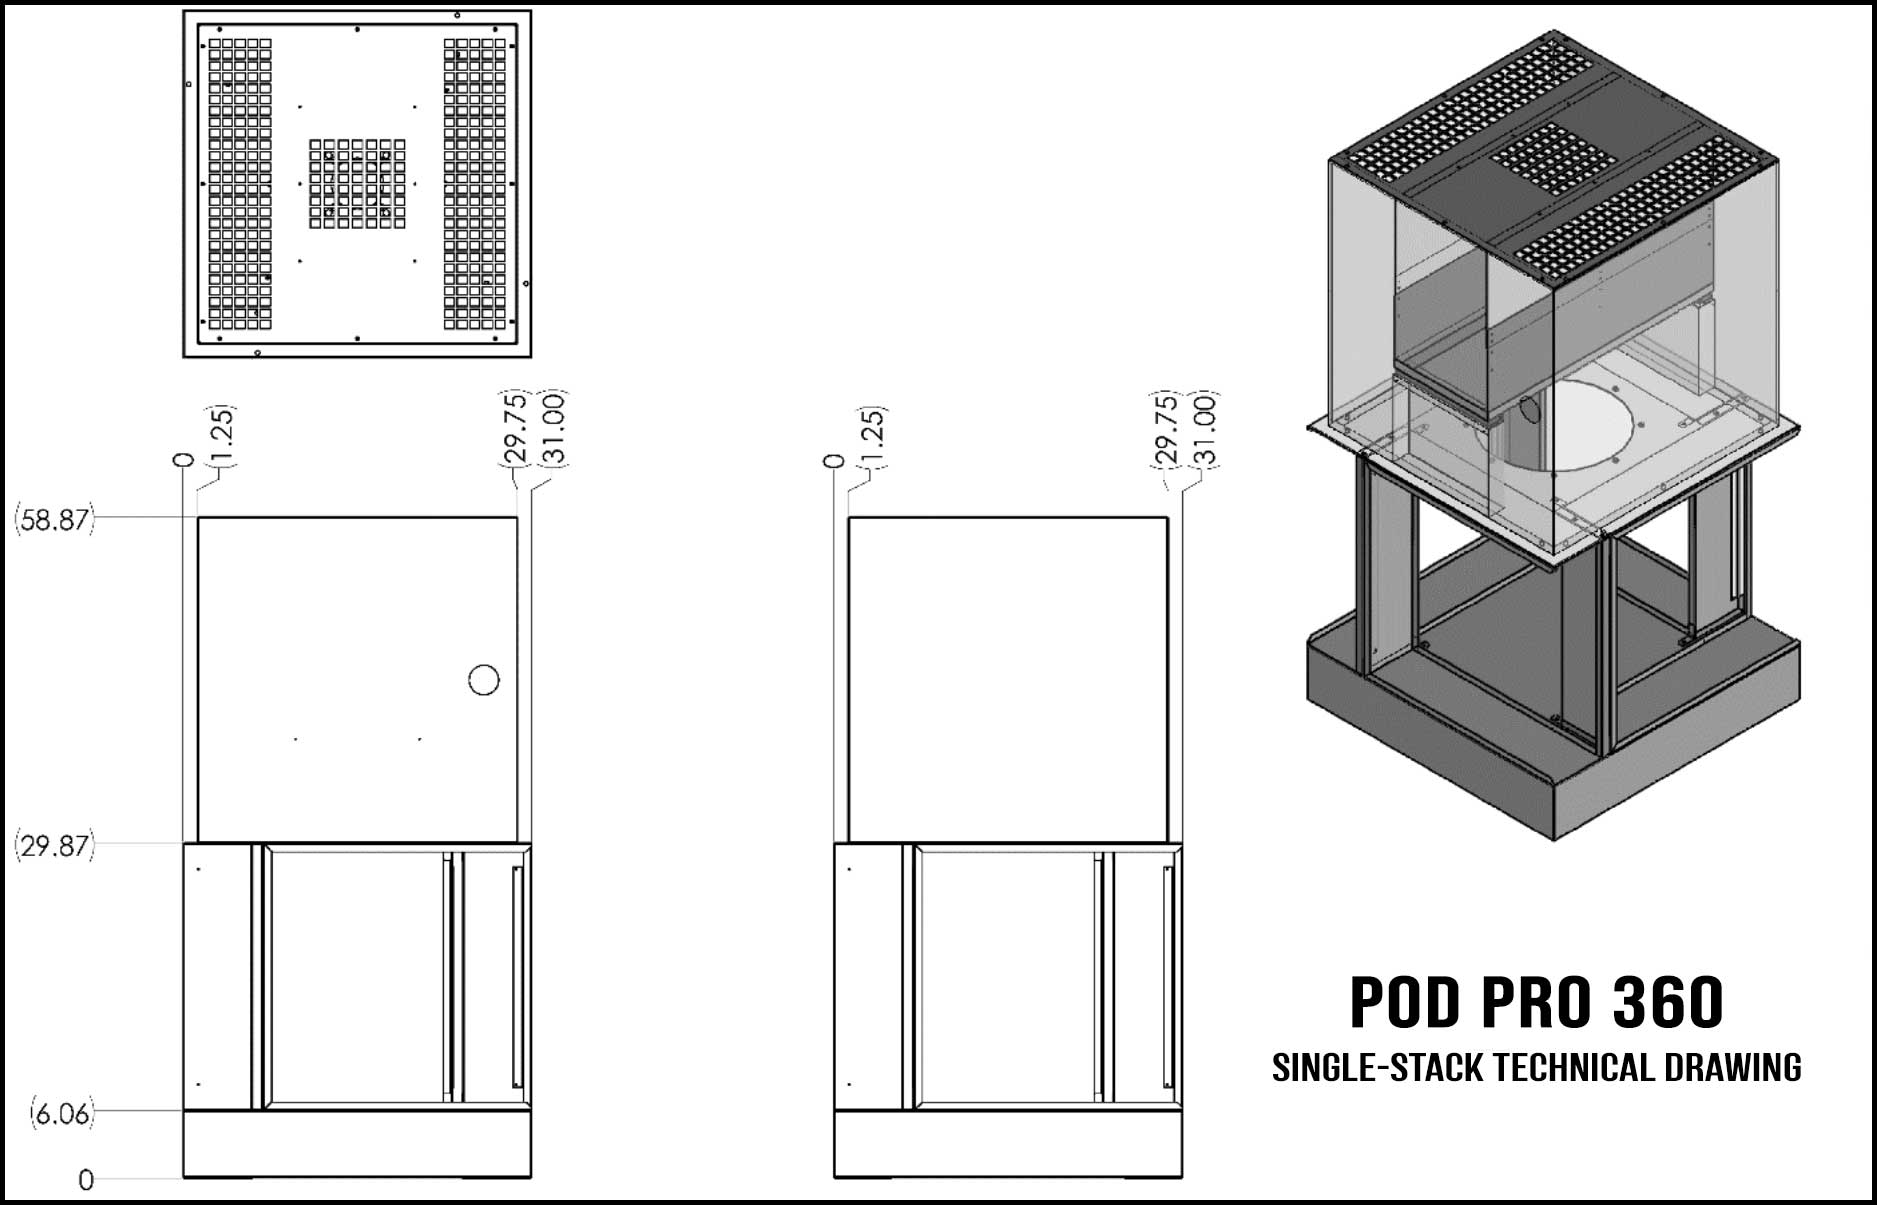 Pod PRO 360 Single-Stack Technical Drawing